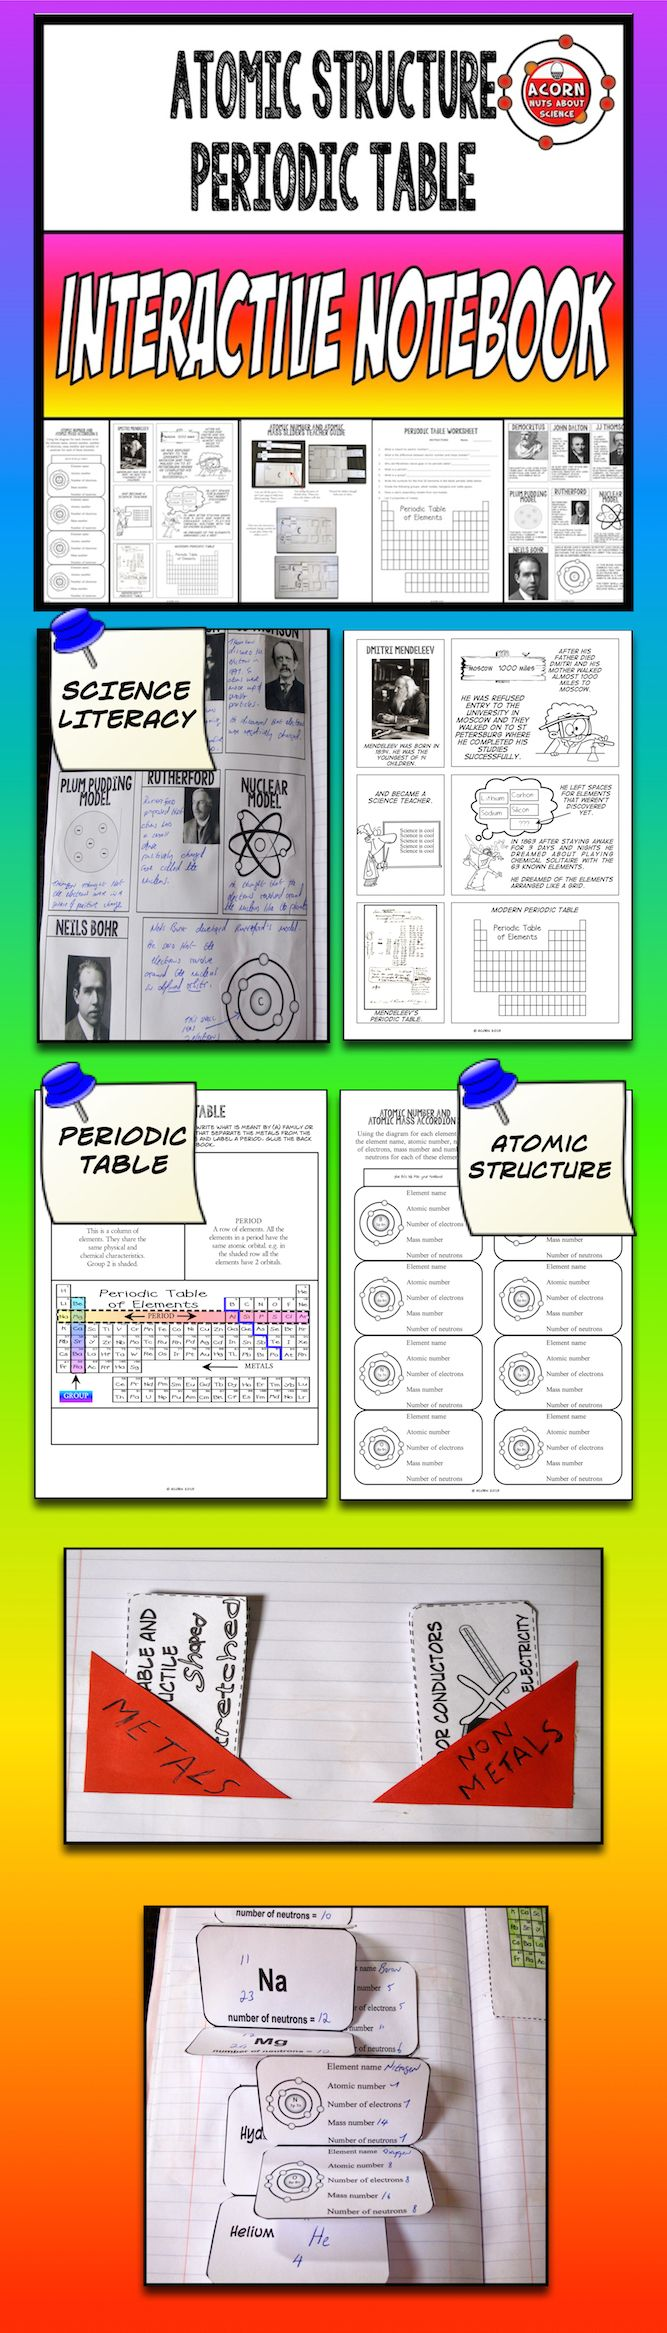 249 best science images on pinterest atom structure periodic table interactive notebook gamestrikefo Choice Image